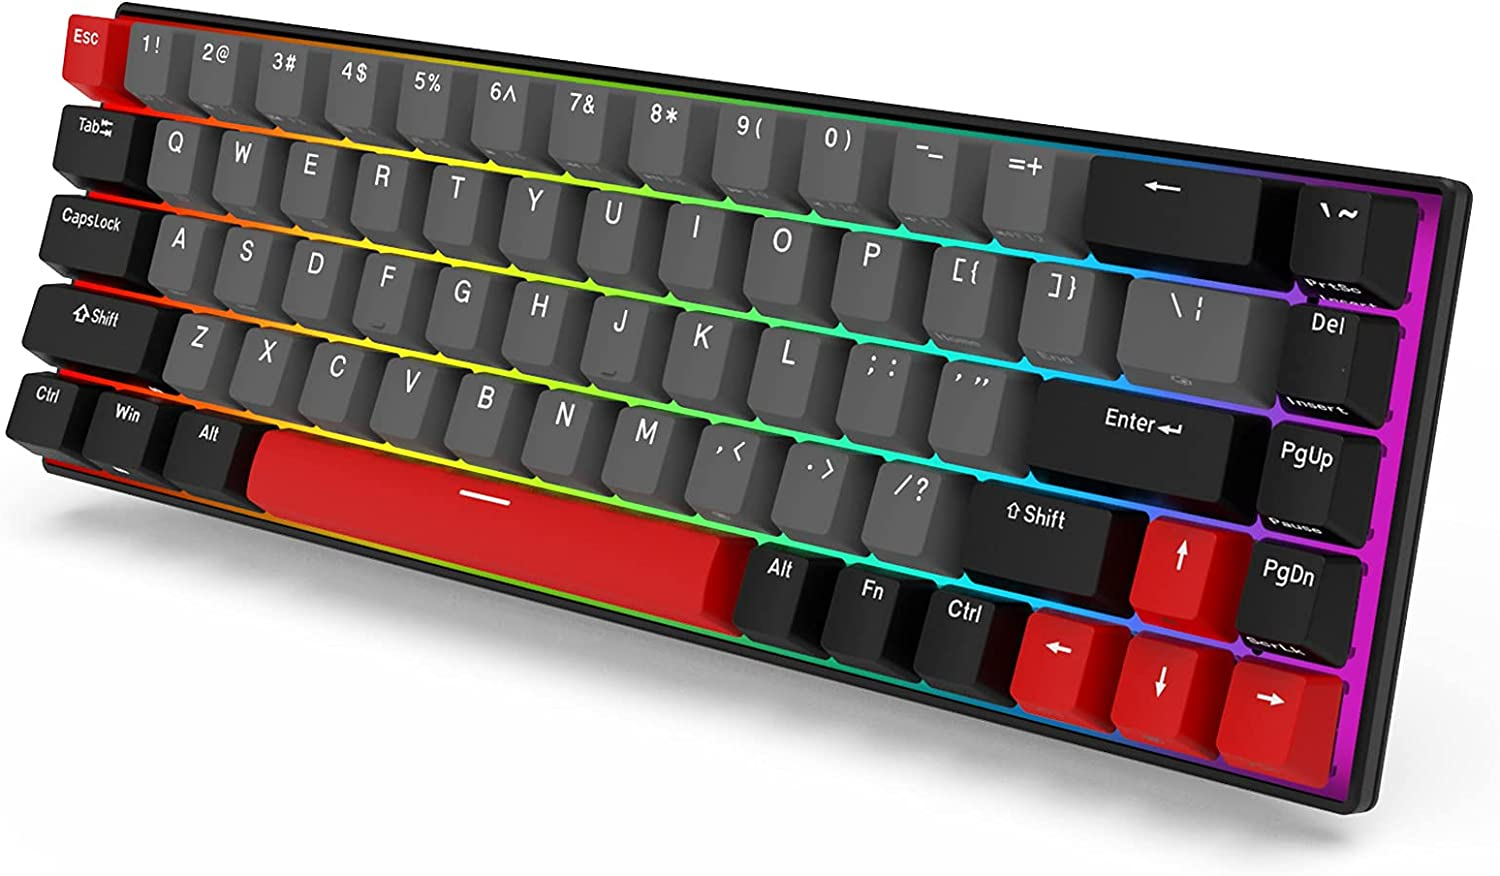 Royal Kludge G68 Dolch 65% Mechanical Keyboard